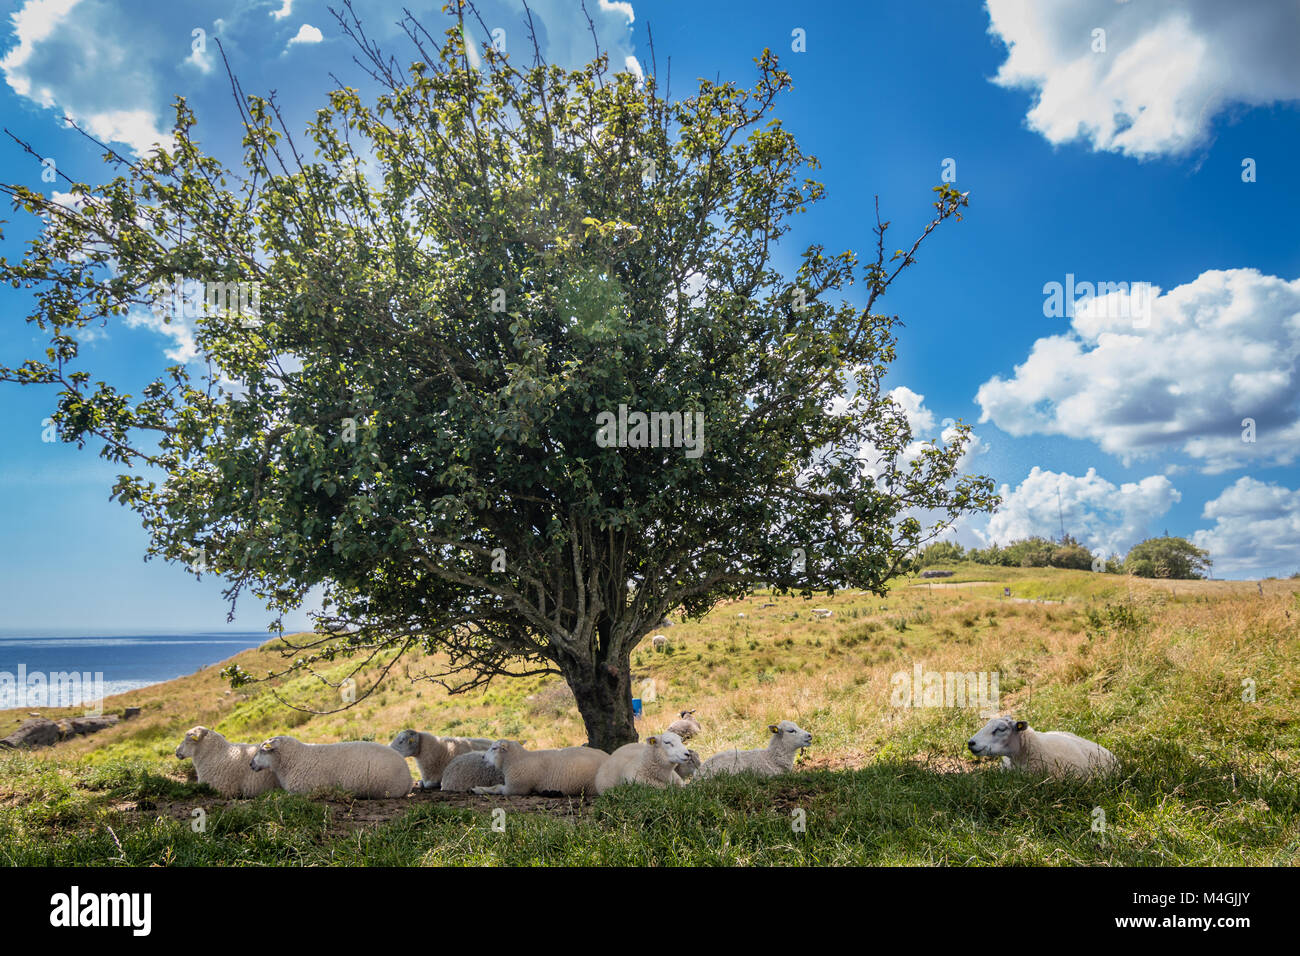 Tree with sheeps in the shaddow in sunny island landscape with baltic sea - Stock Image